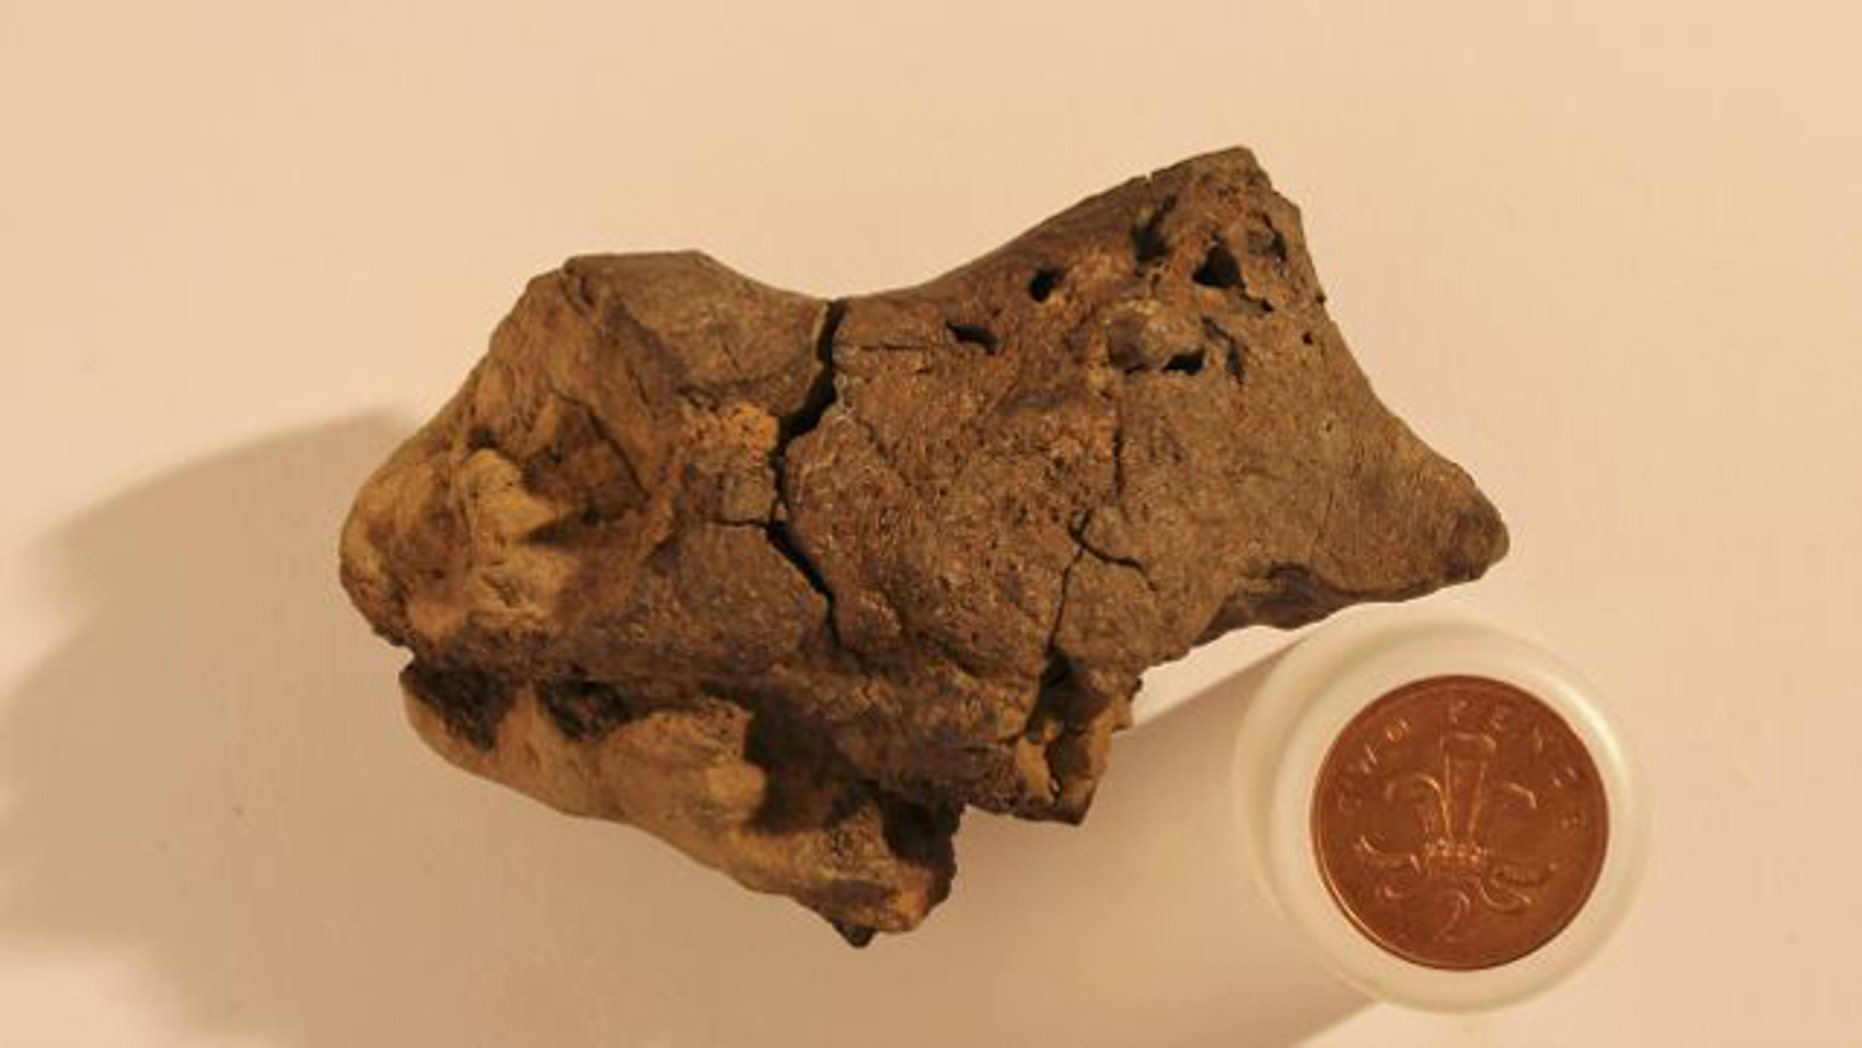 This undated image shows the first known example of fossilized brain tissue from a dinosaur, placed next to a one-pence coin for scale